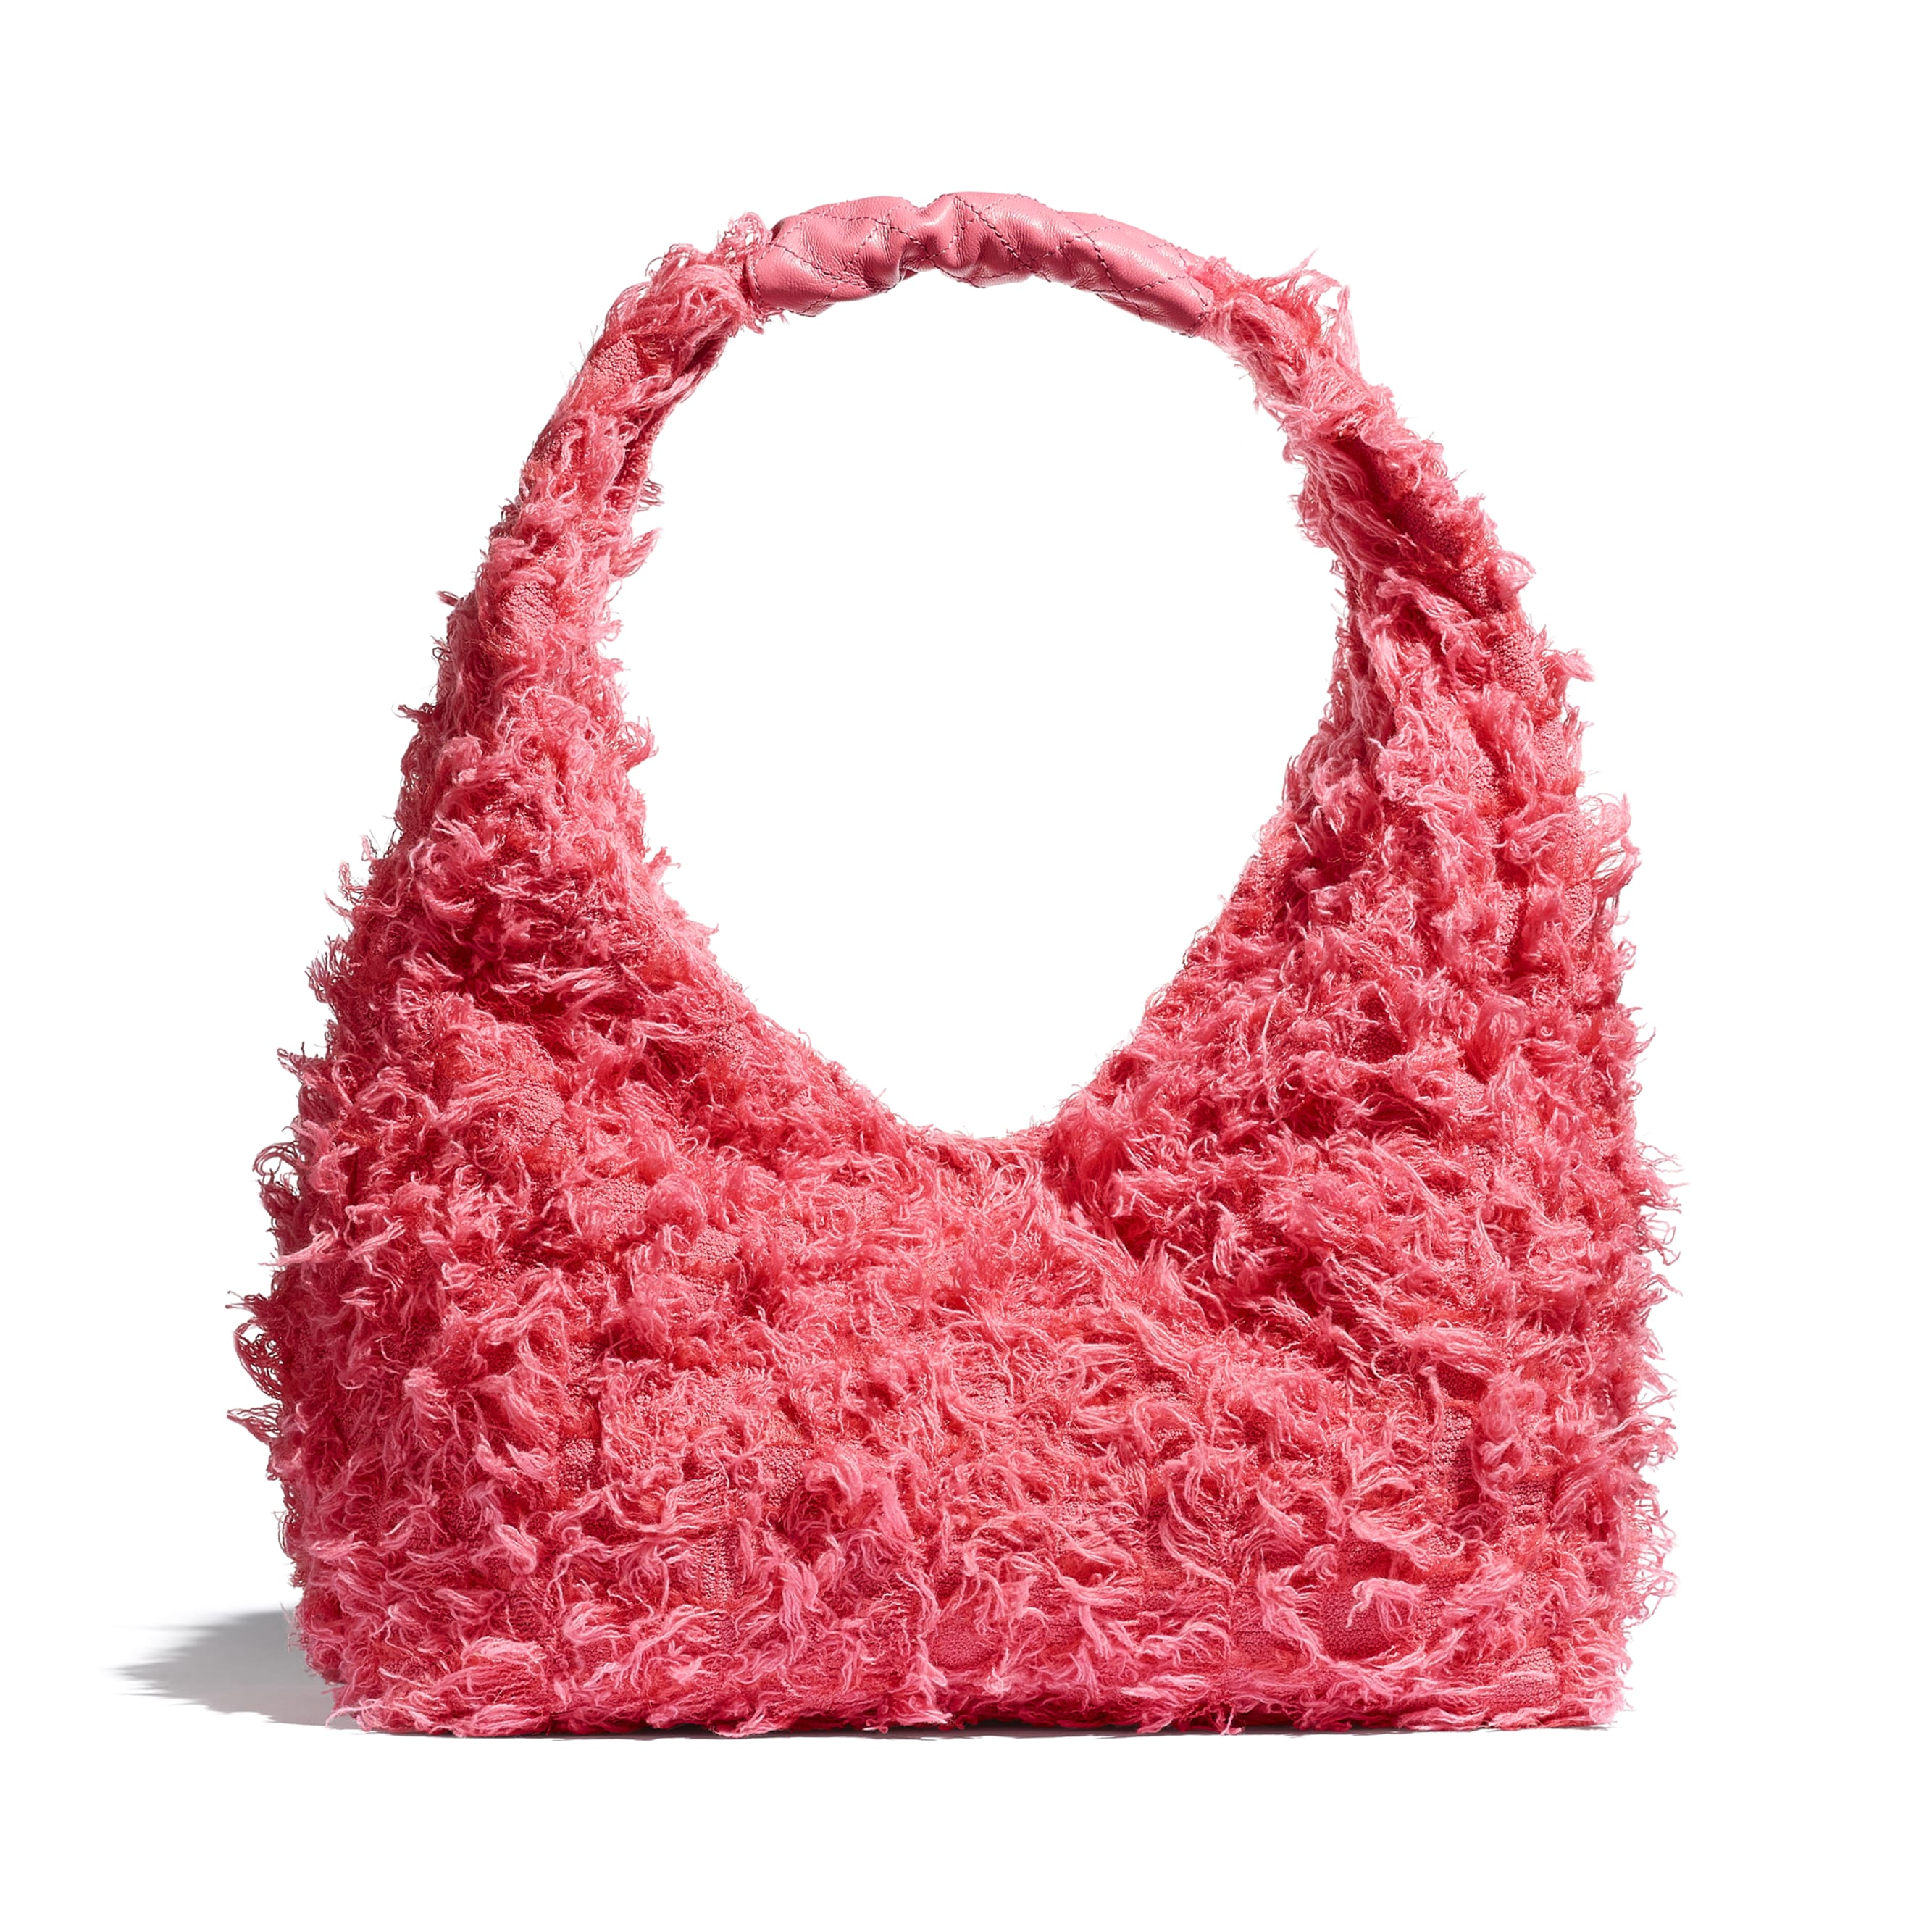 Small Hobo Bag - Coral - Tweed, Calfskin & Gold-Tone Metal - CHANEL - Alternative view - see standard sized version